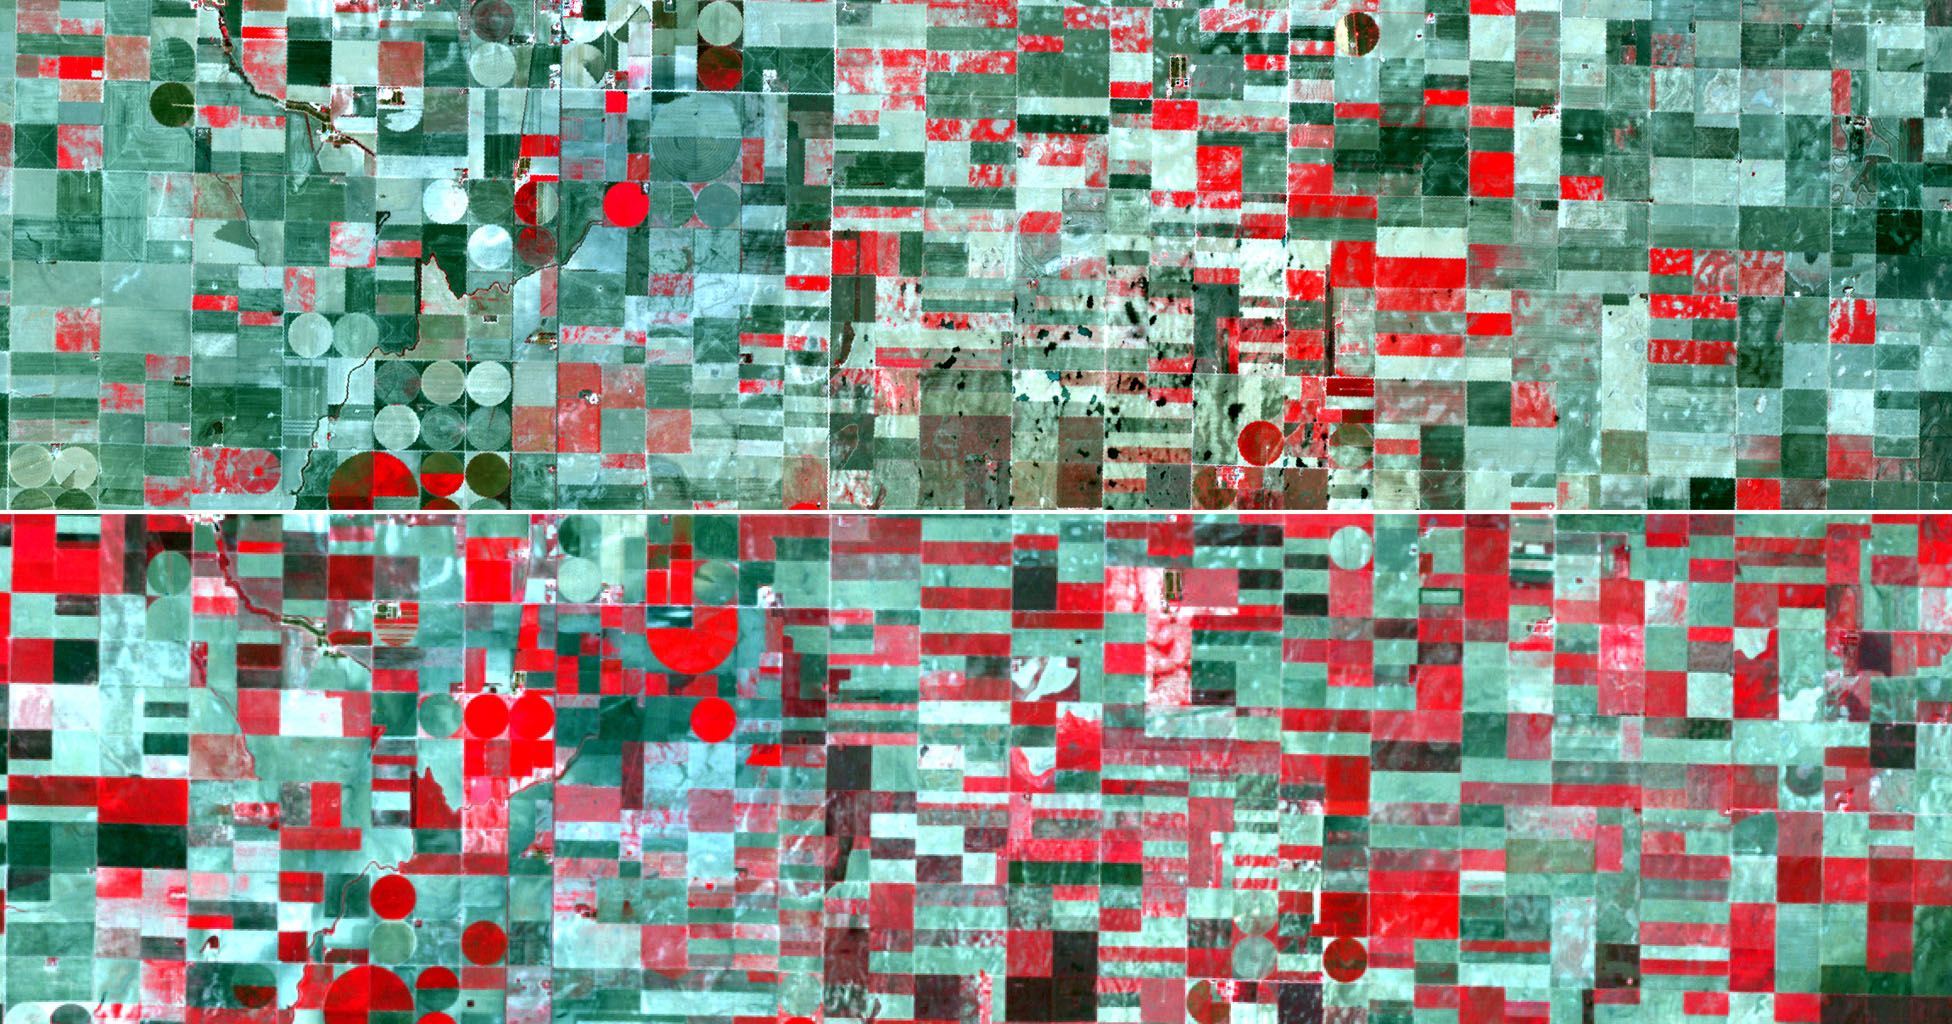 Two satellite images acquired by NASA's Terra spacecraft, obtained about 10 years apart, clearly illustrate the effects of the near-historic drought conditions in southwestern Kansas. Farmers are among the hardest hit.